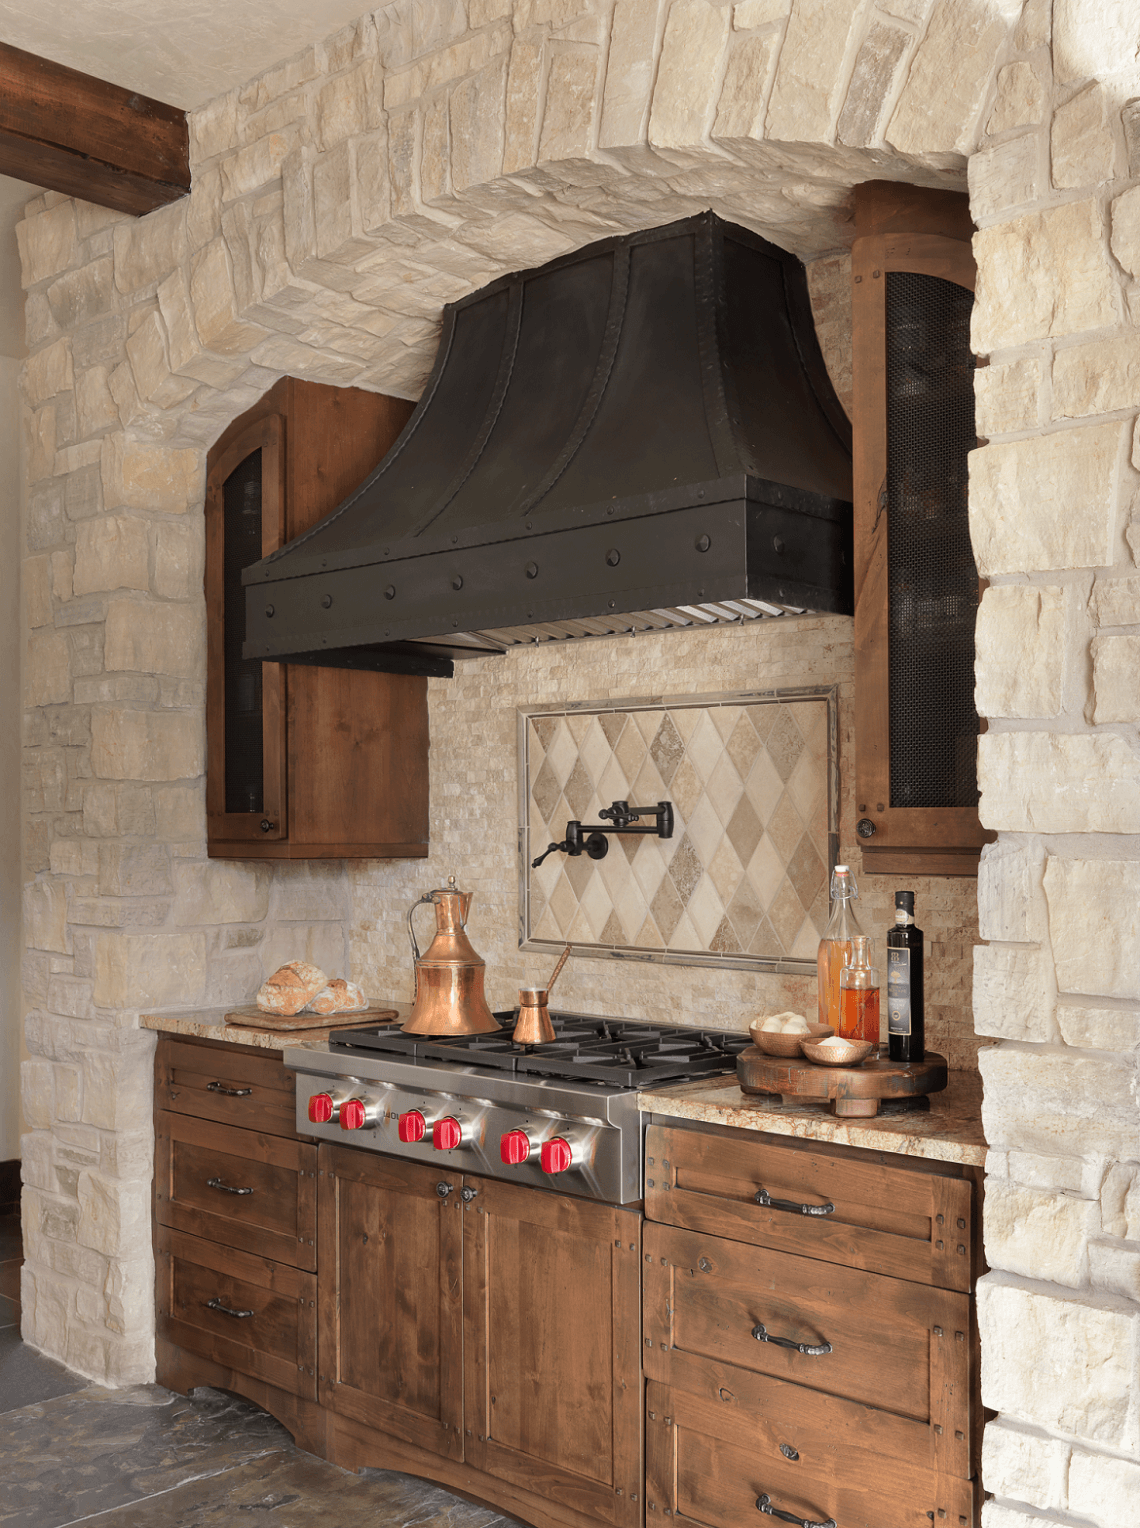 Rustic Kitchen  Custom Range Hood  BeckAllen Cabinetry